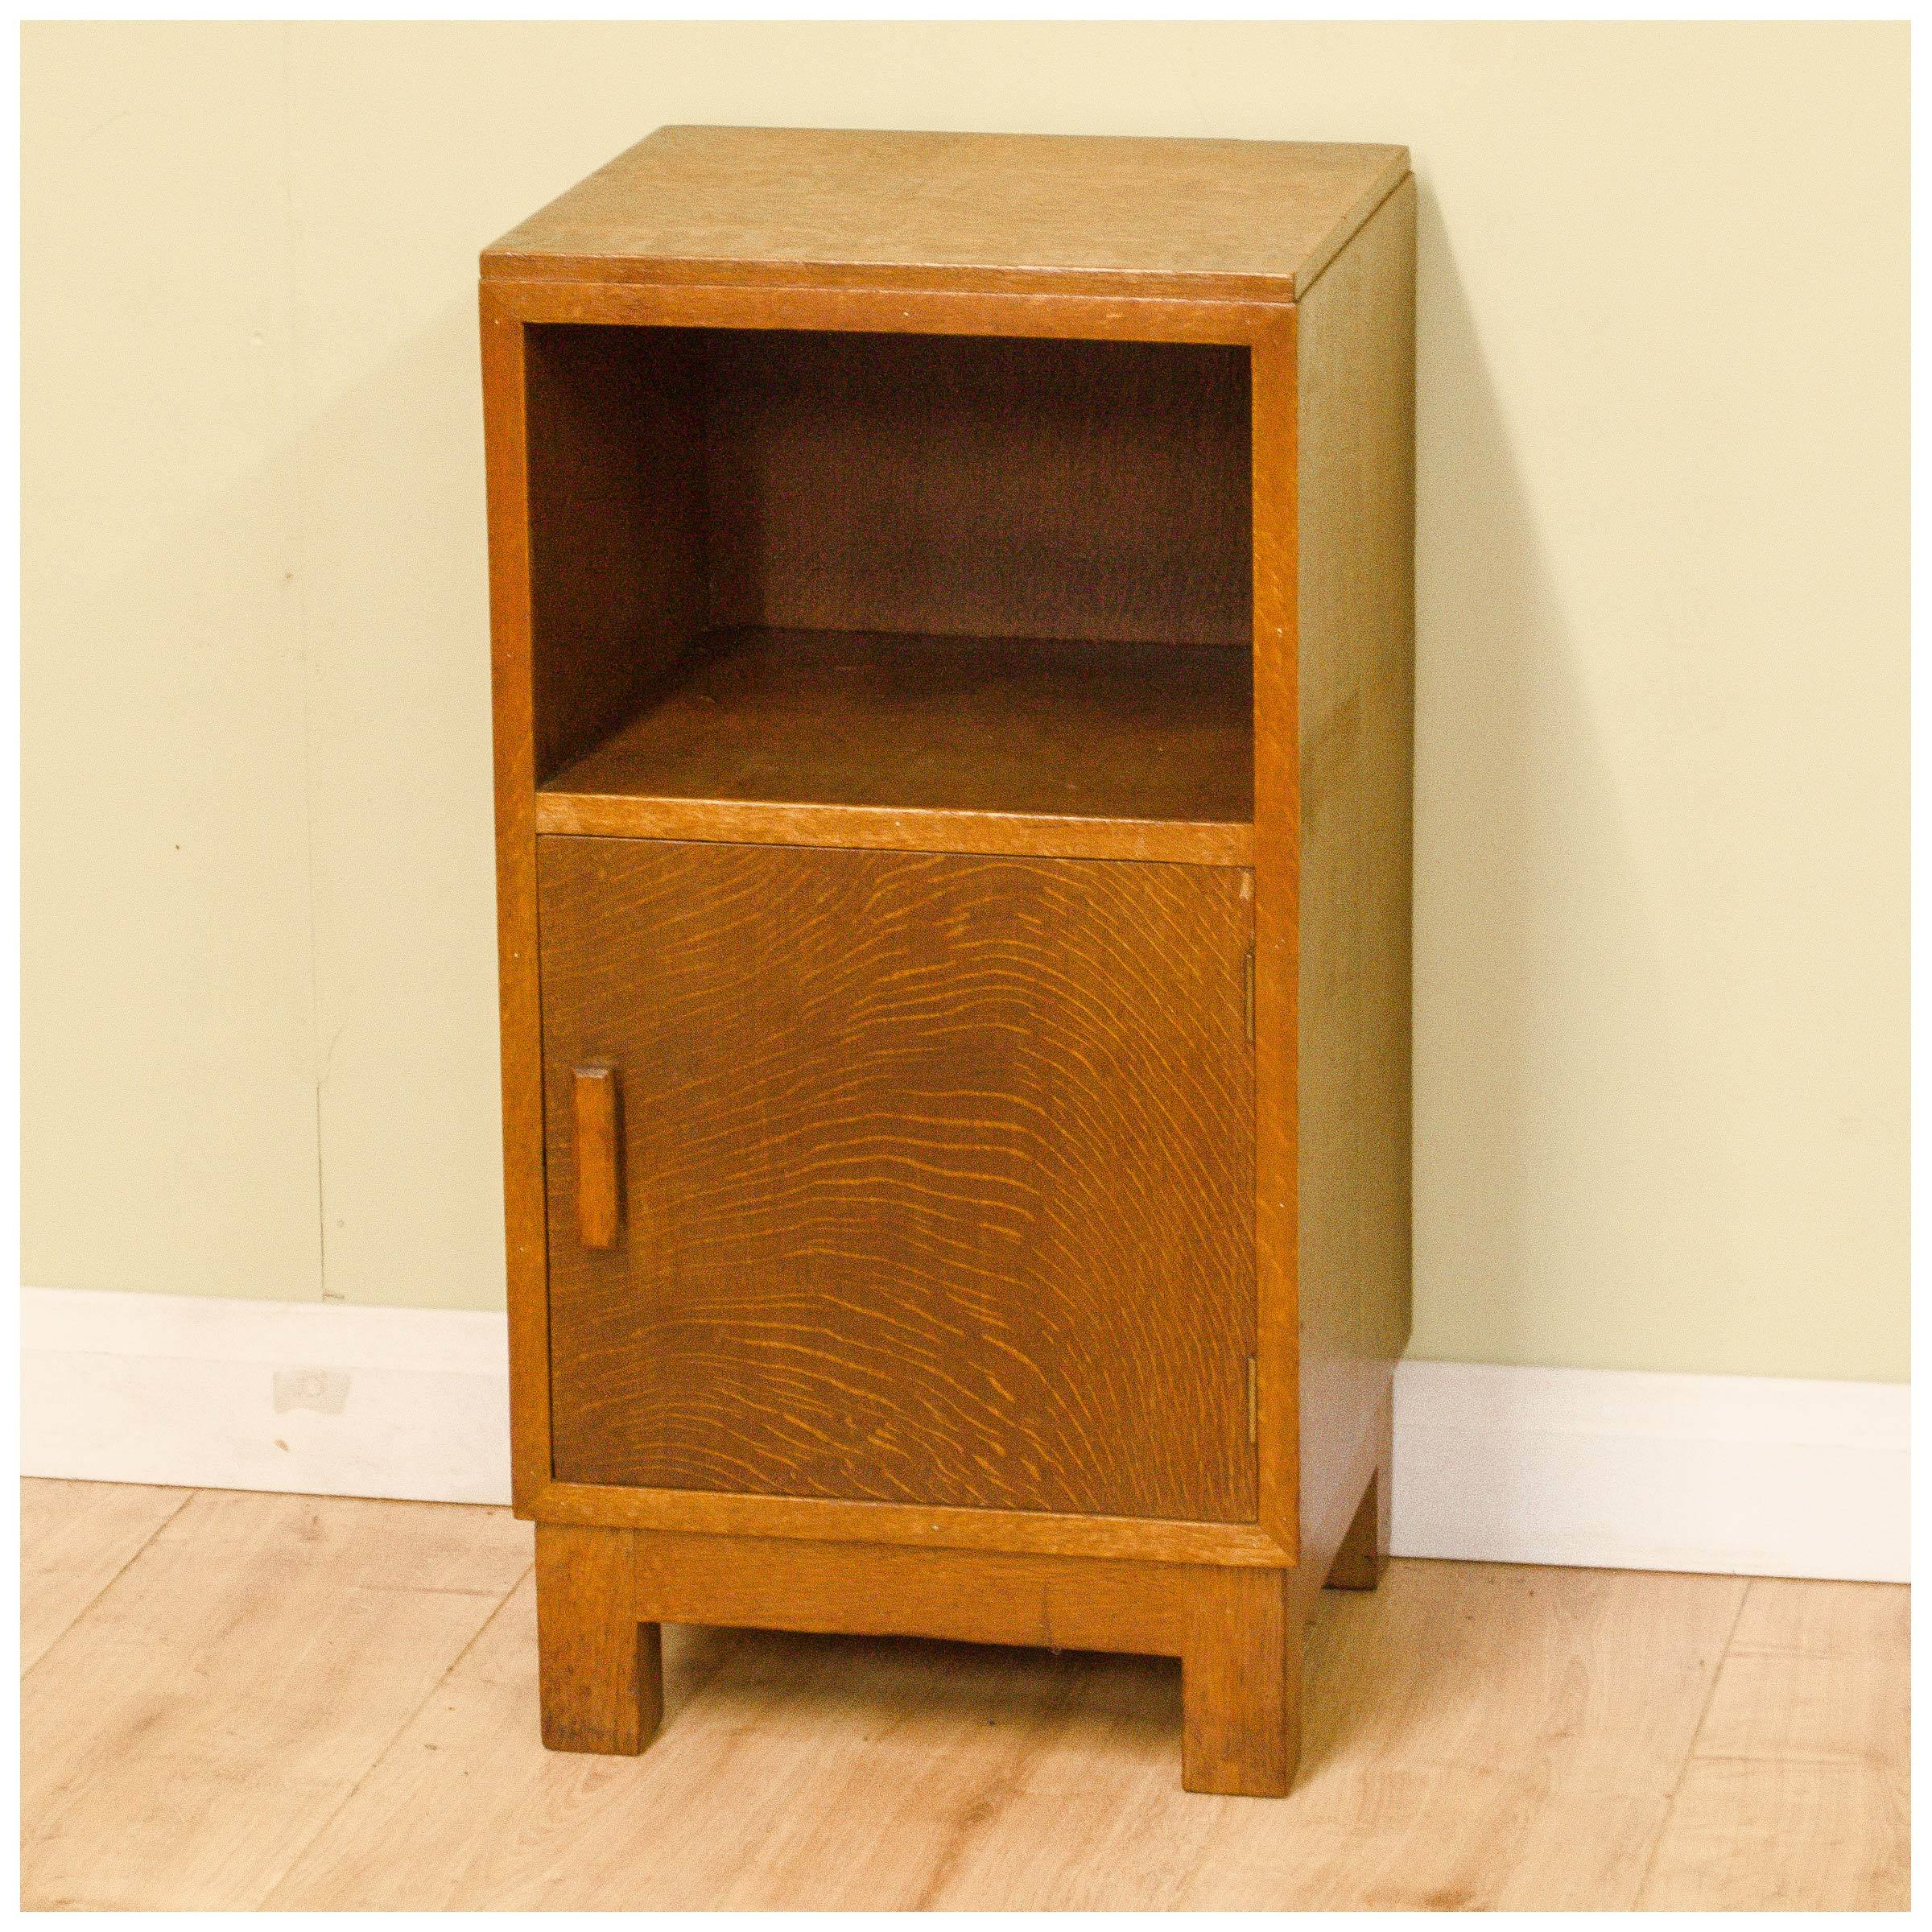 arts-and-crafts-oak-bedside-cabinet-by-heal-and-co-ambrose-heal-b0020130a.jpg